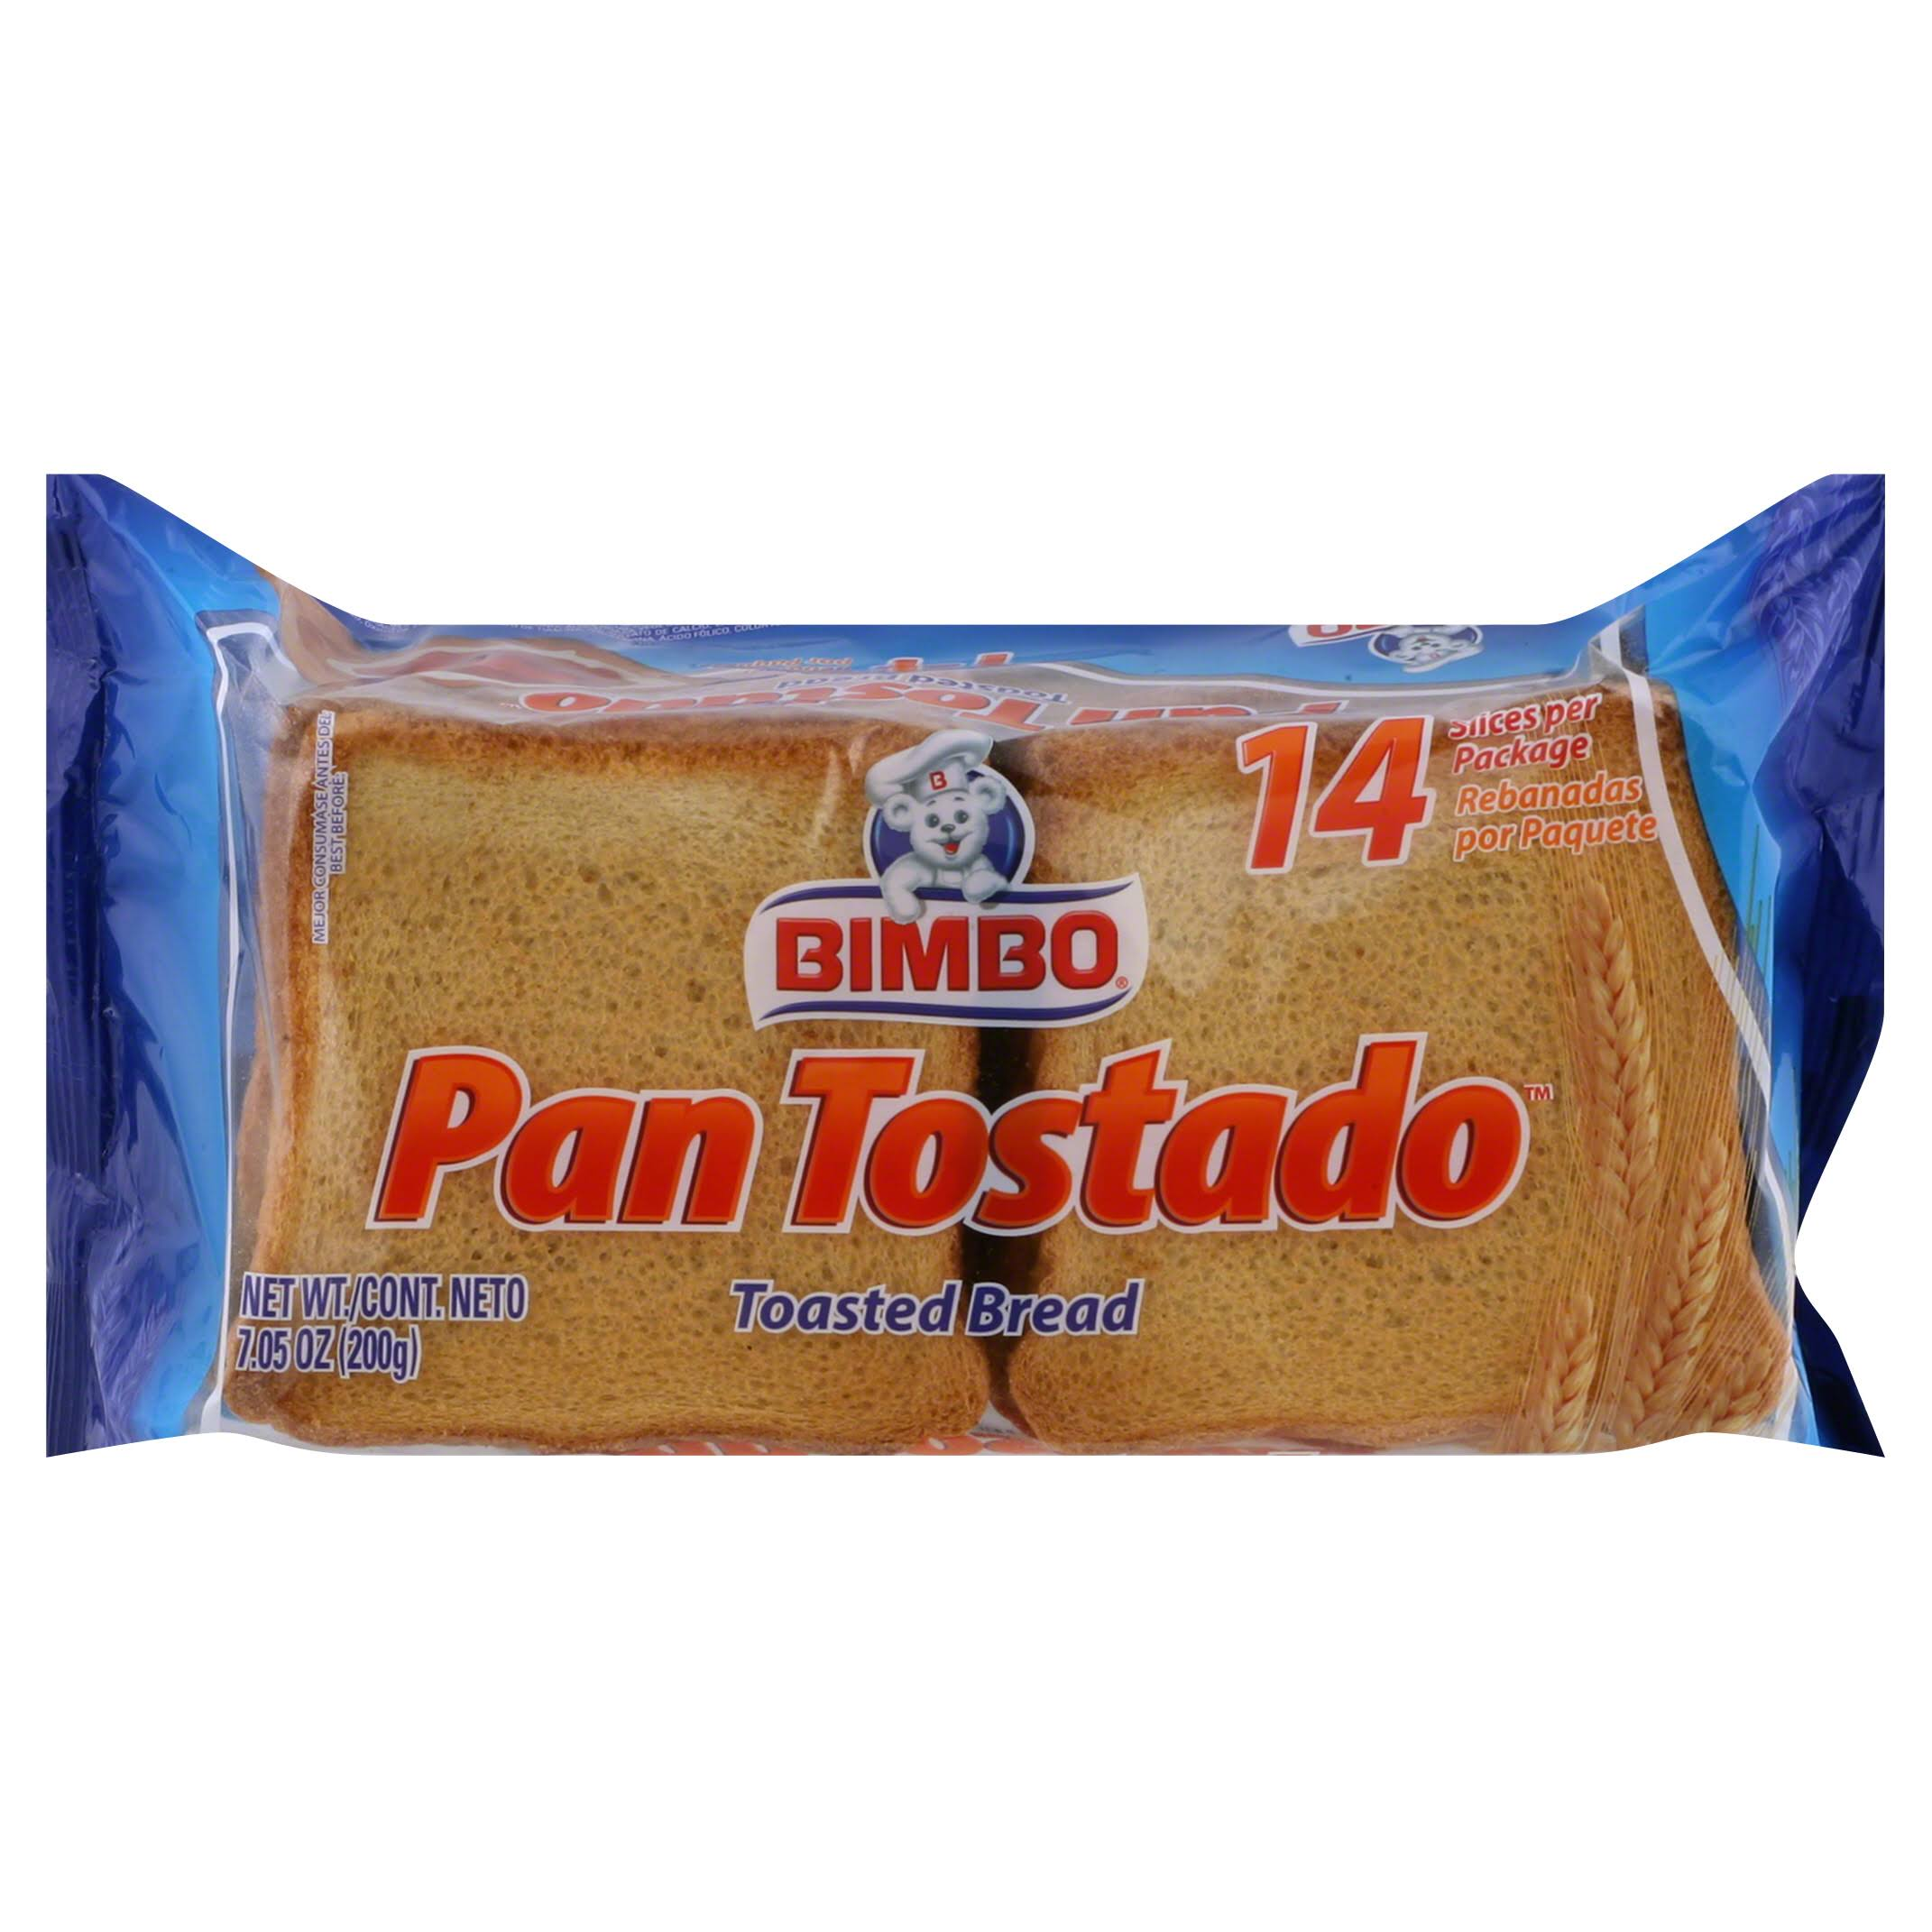 Bimbo Toasted Bread - Original, 7.4oz